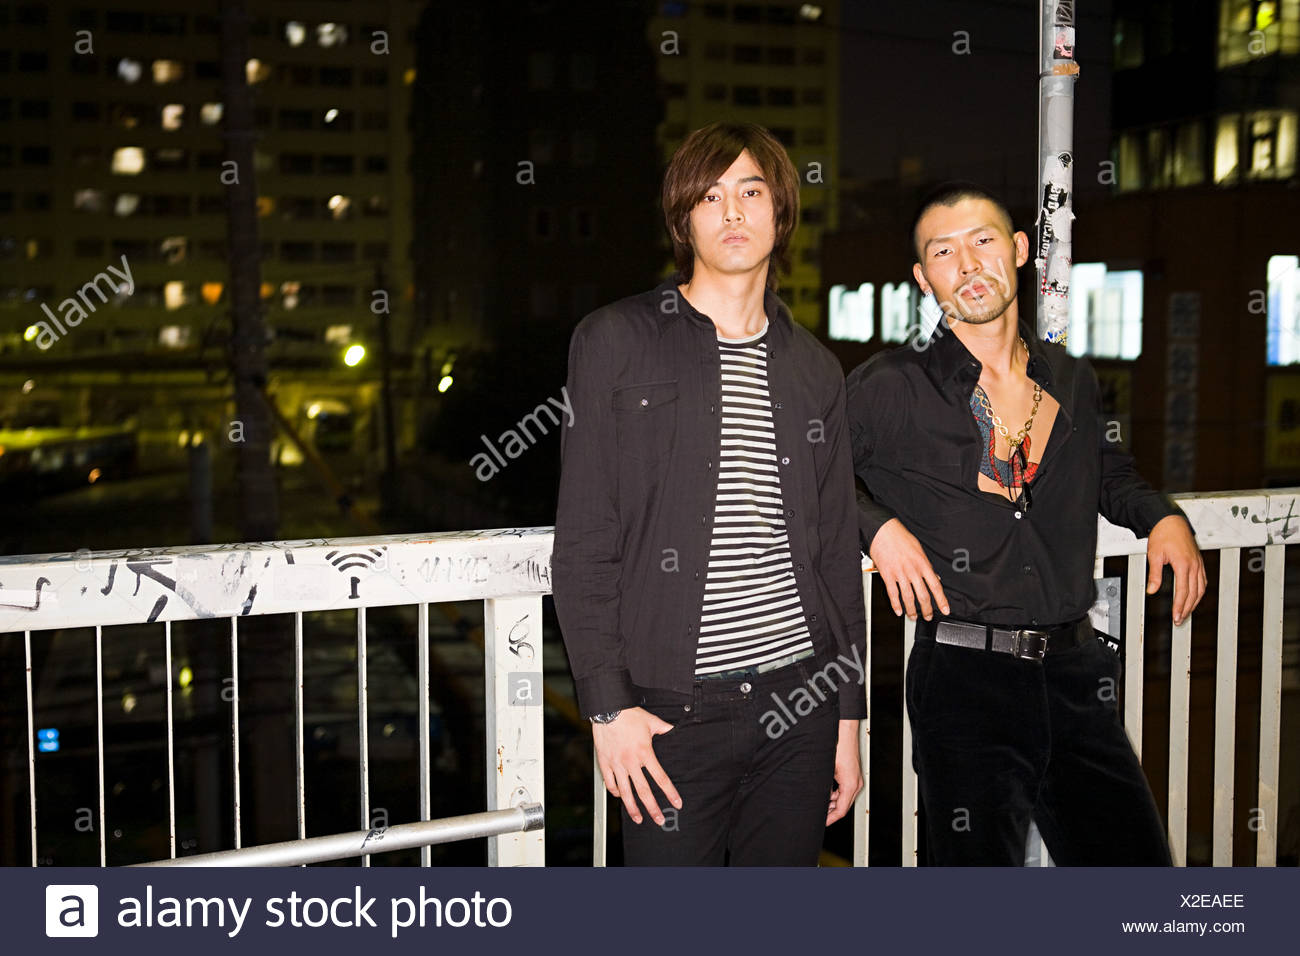 Two japanese men against urban backdrop - Stock Image